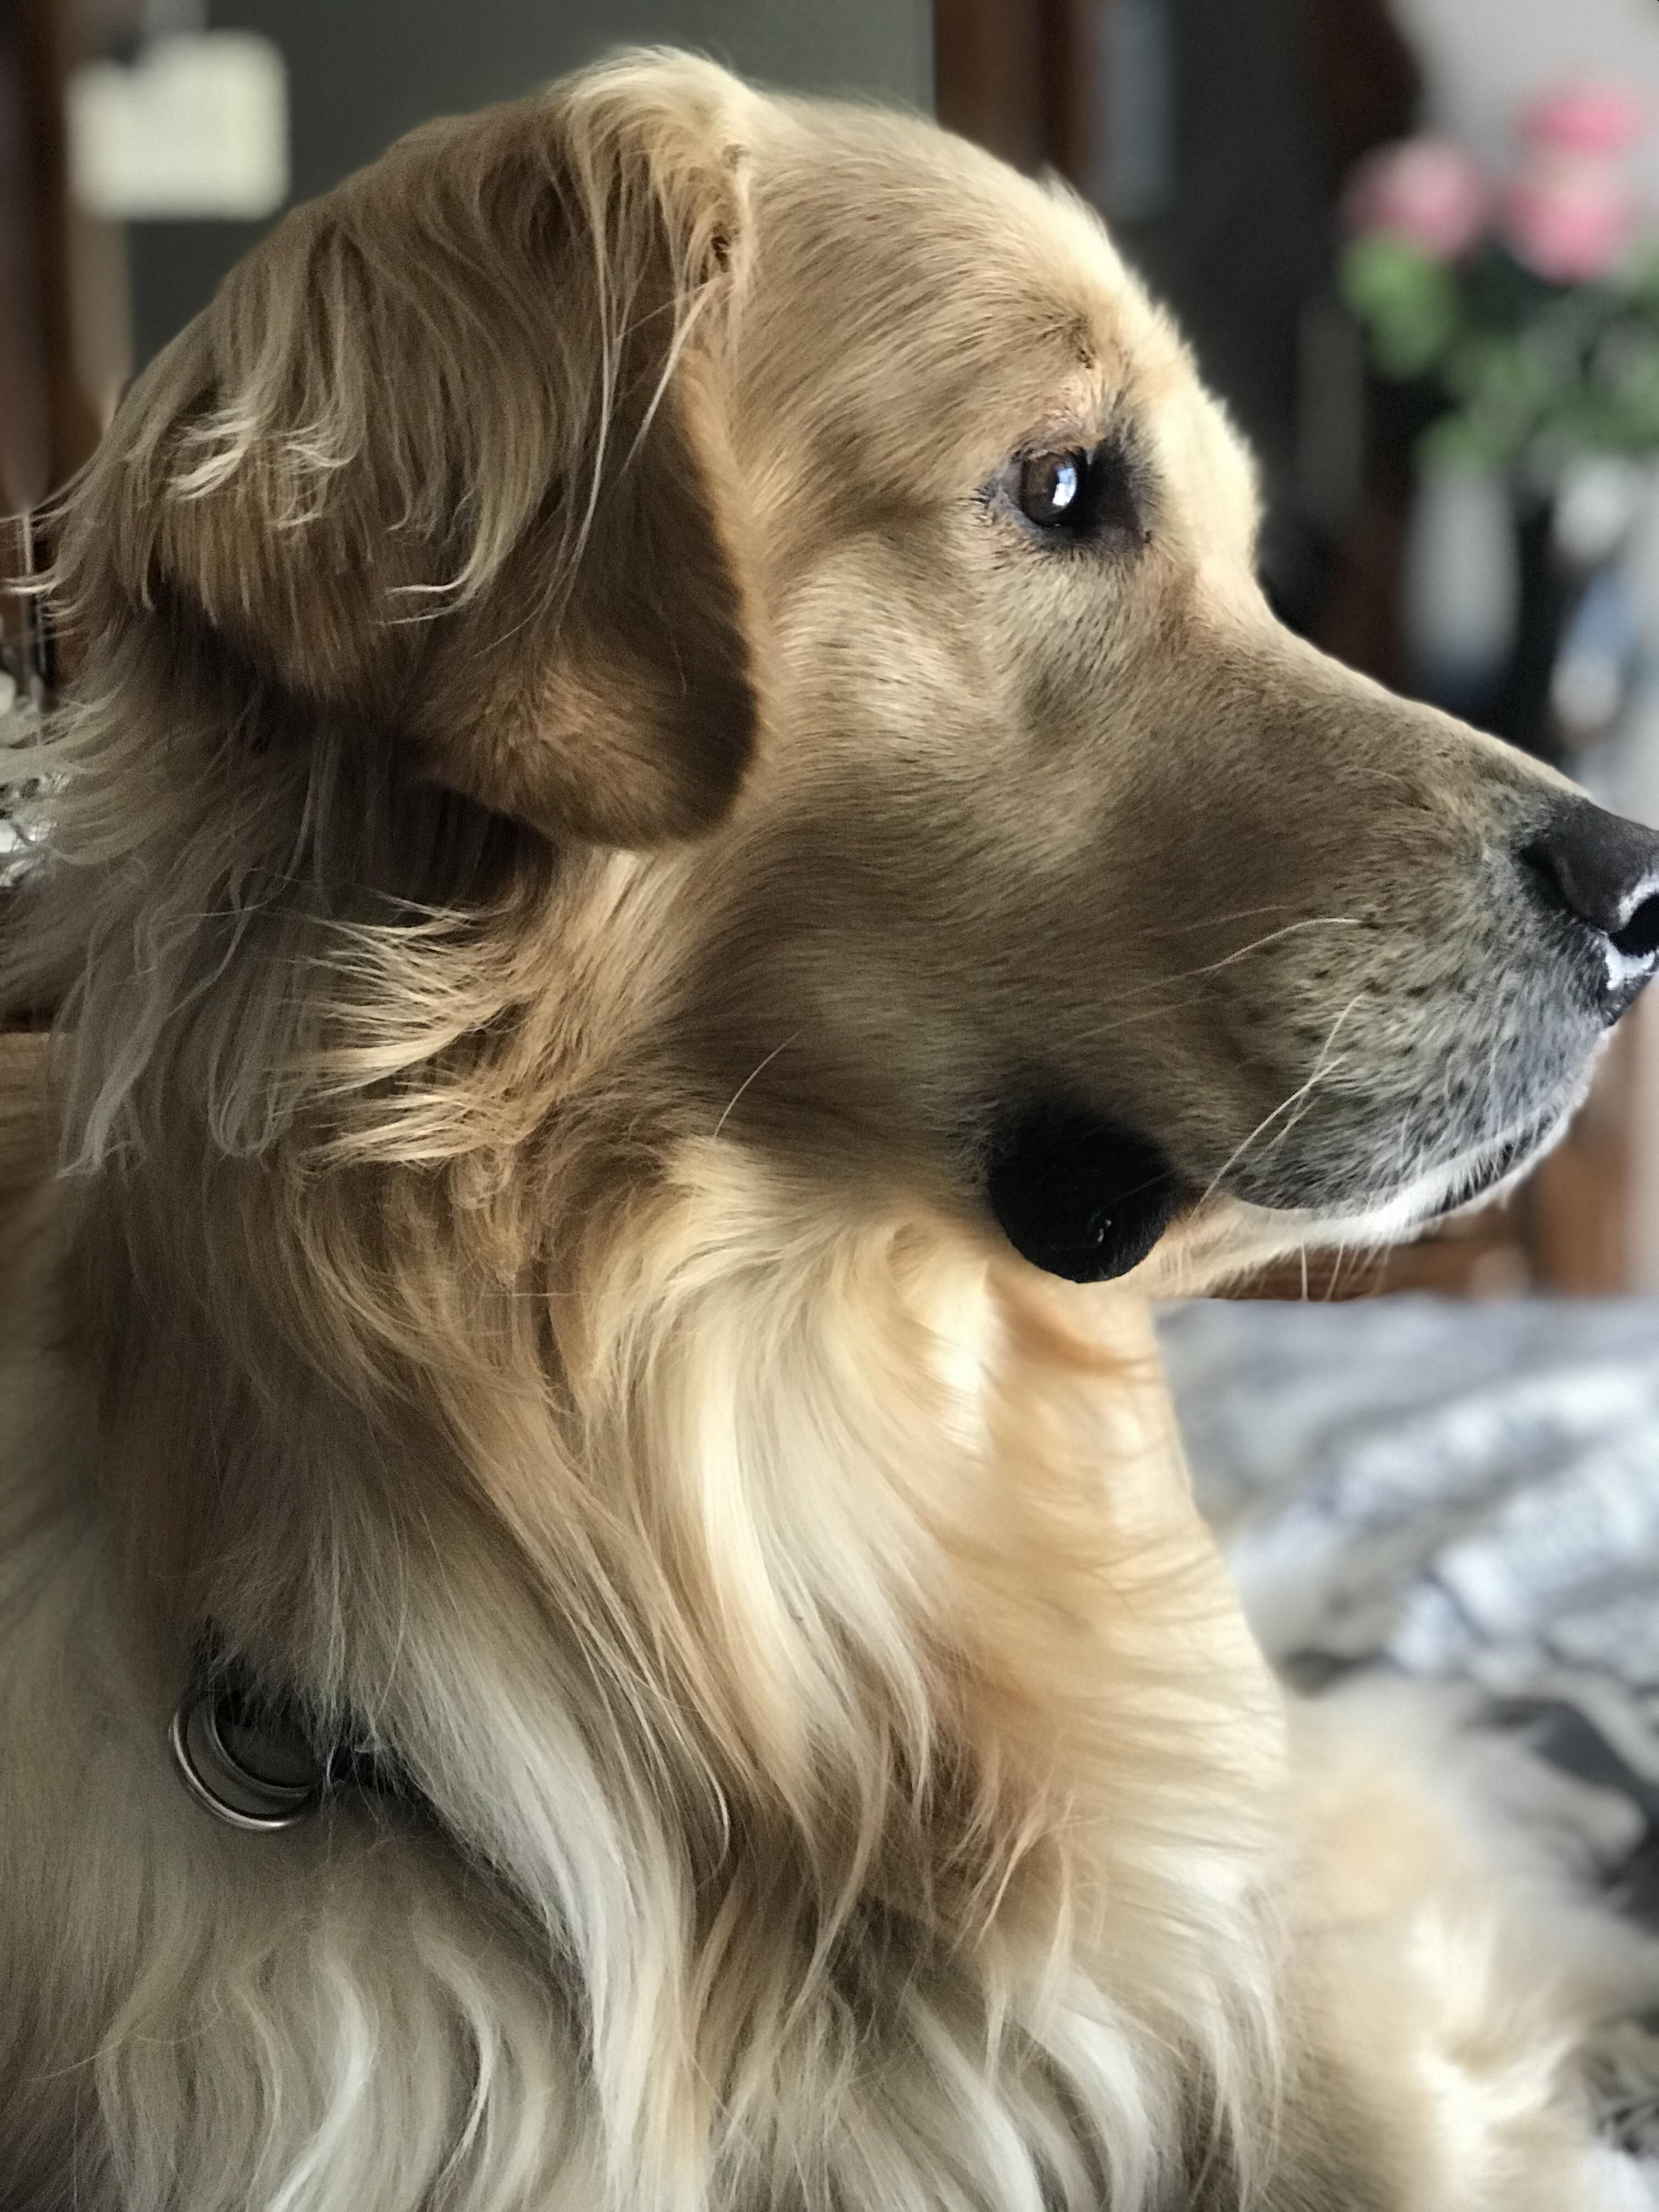 A Very Good And Sincere Fellow Dogpictures Dogs Aww